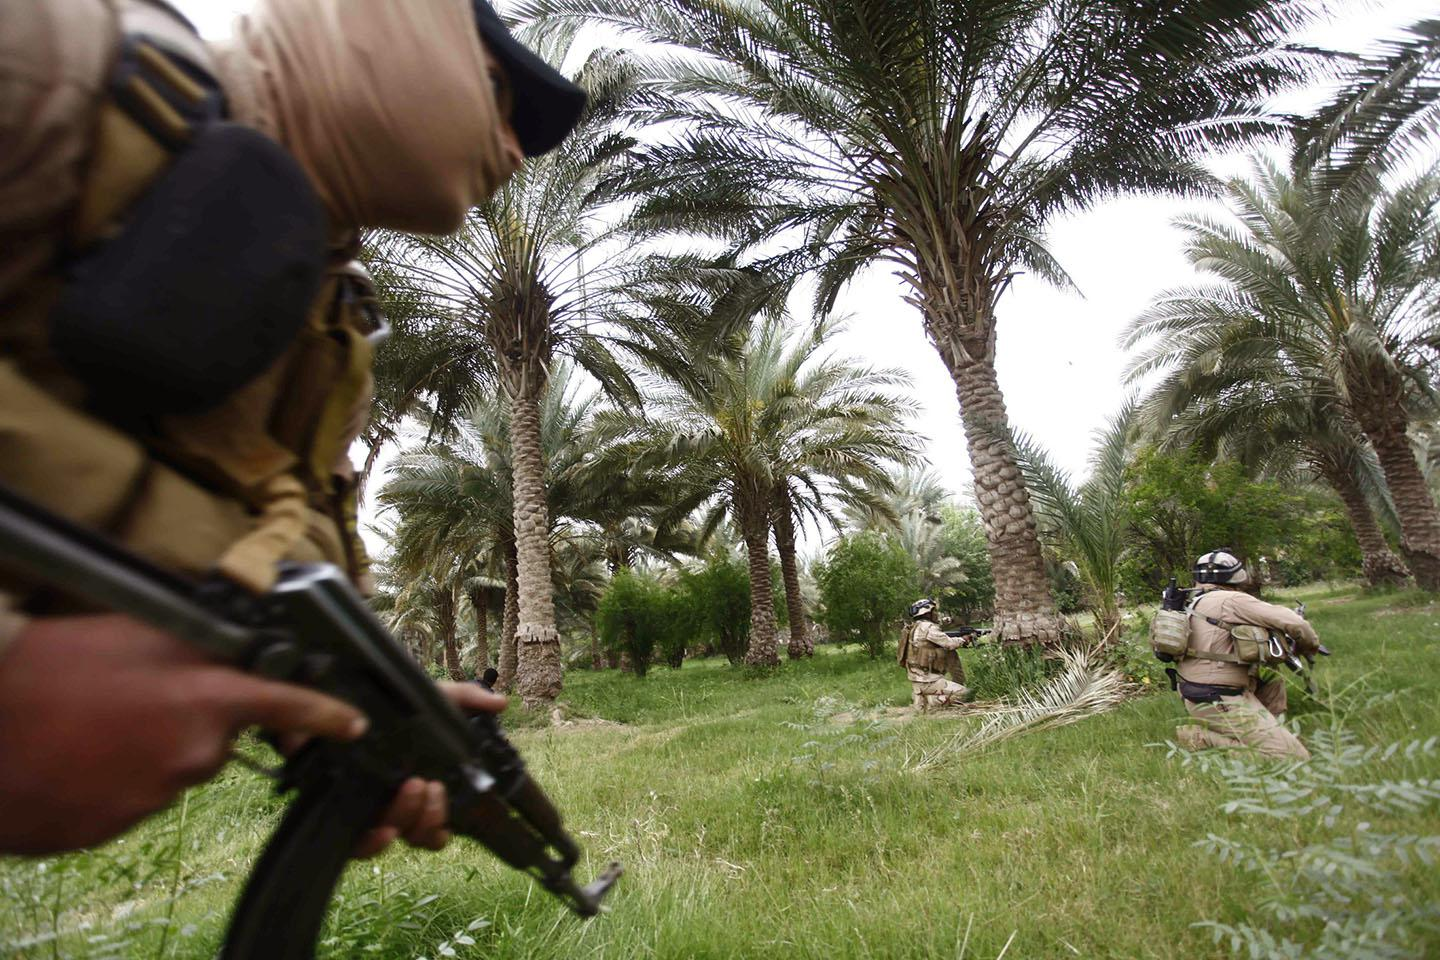 Iraqi security forces personnel take part in clashes with ISIS forces in Babel province south of Baghdad, April 2, 2014.